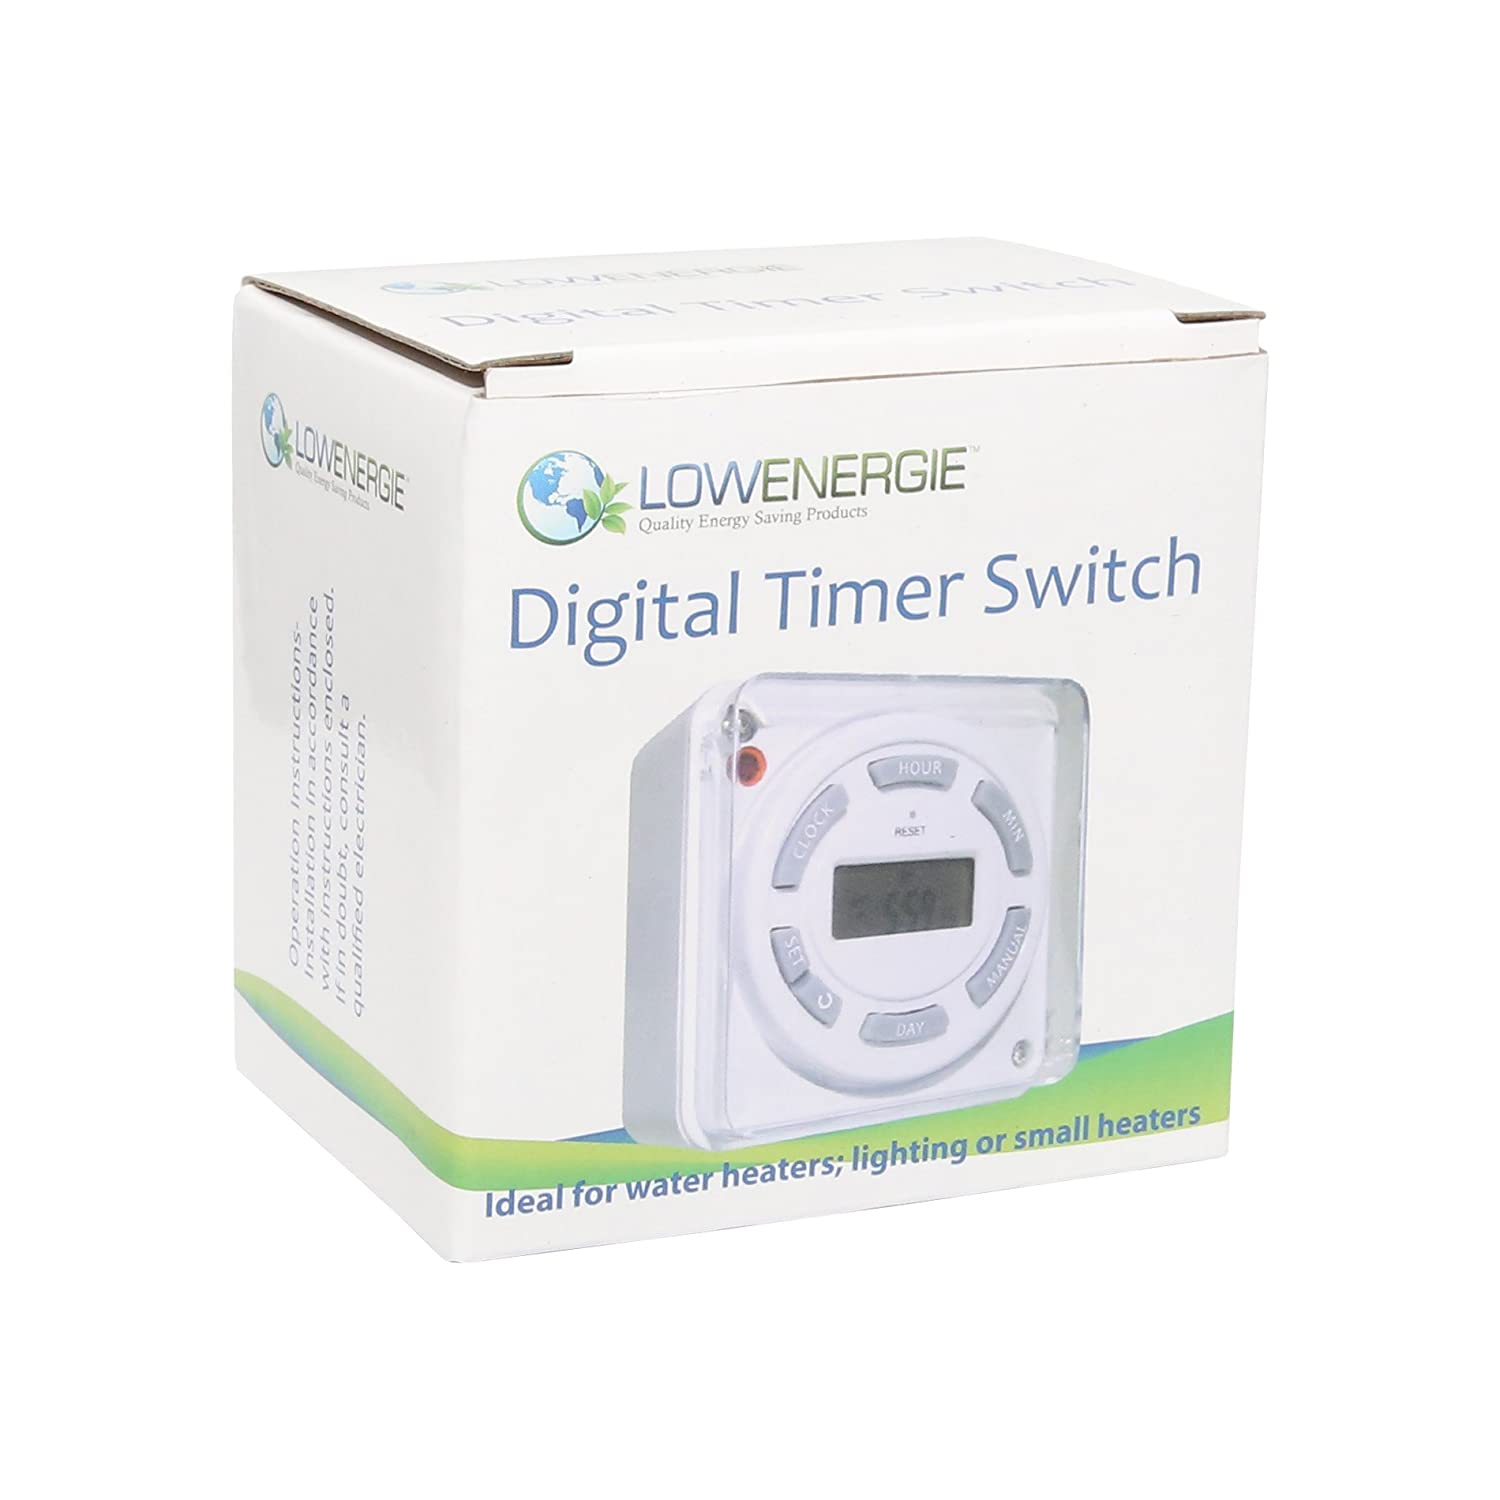 16A Lowenergie Digital Water Immersion Heater Timer 7 Day ...